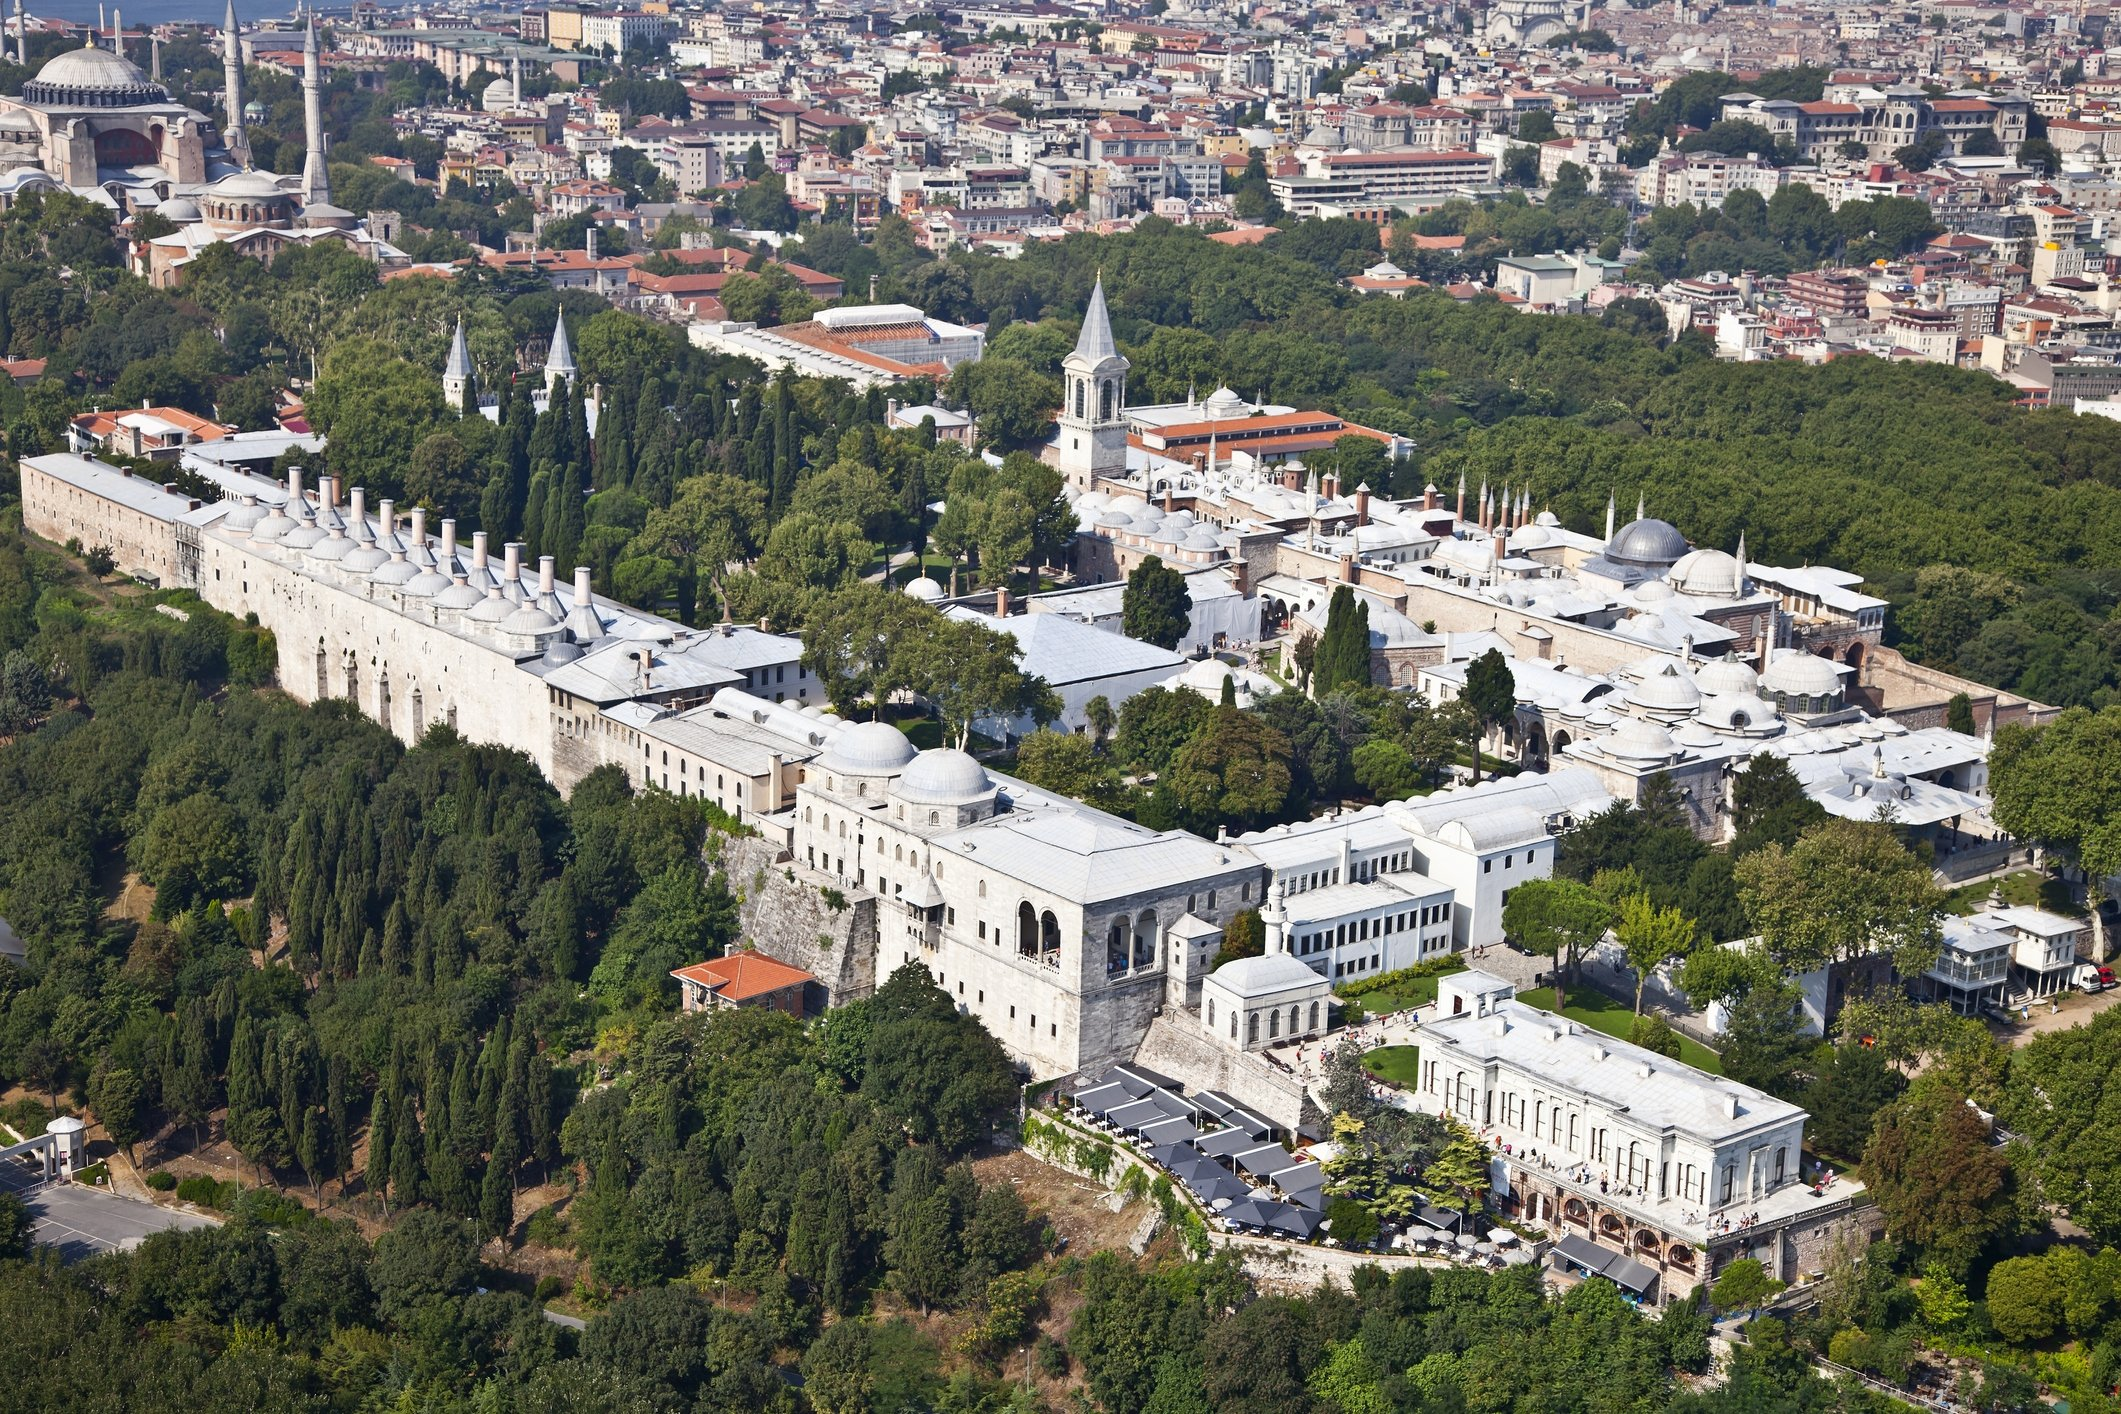 A general view from the Topkapı Palace in Istanbul. (iStock Photo)